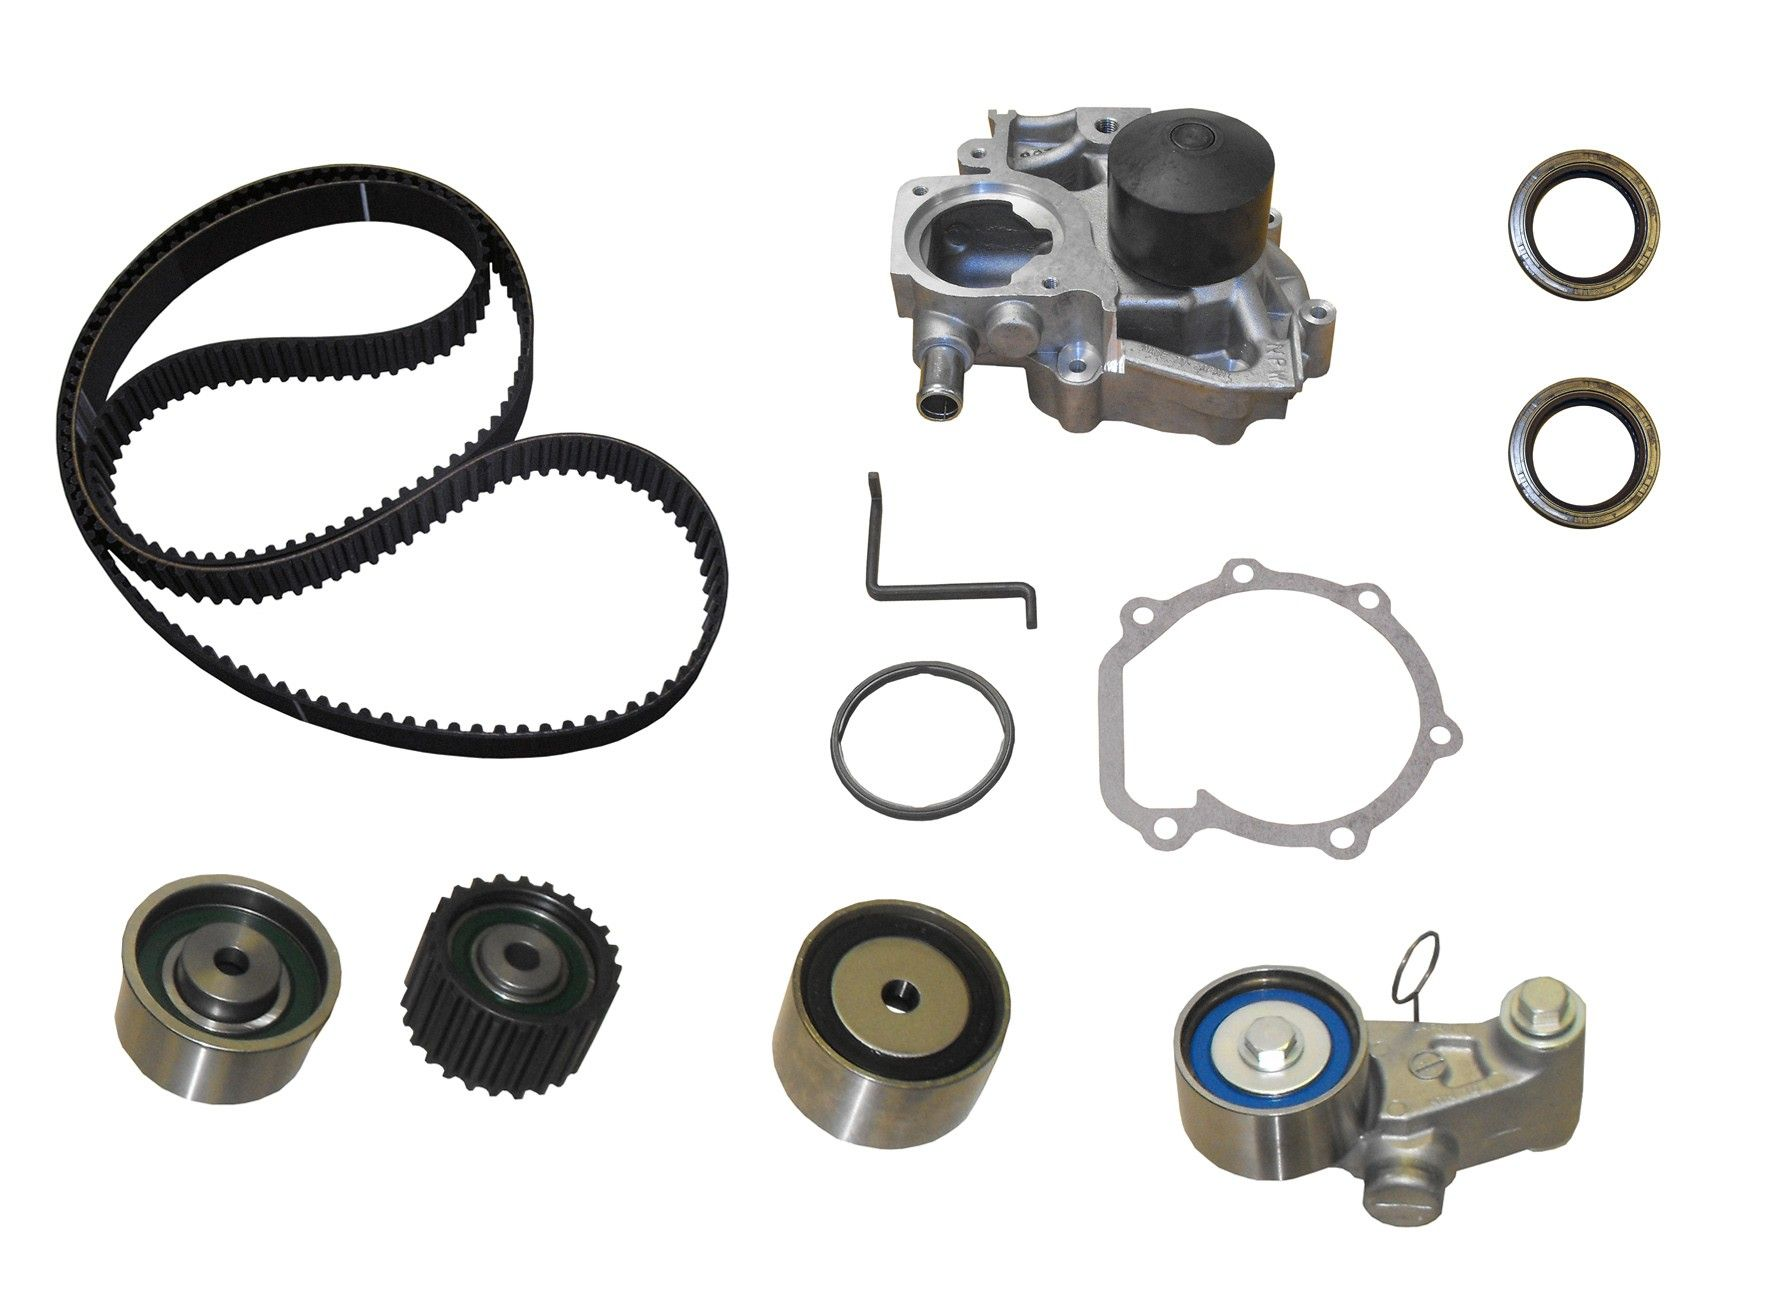 2009 Subaru Legacy Timing Belt Image B4 Diagram Kit With Water Pump Replacement